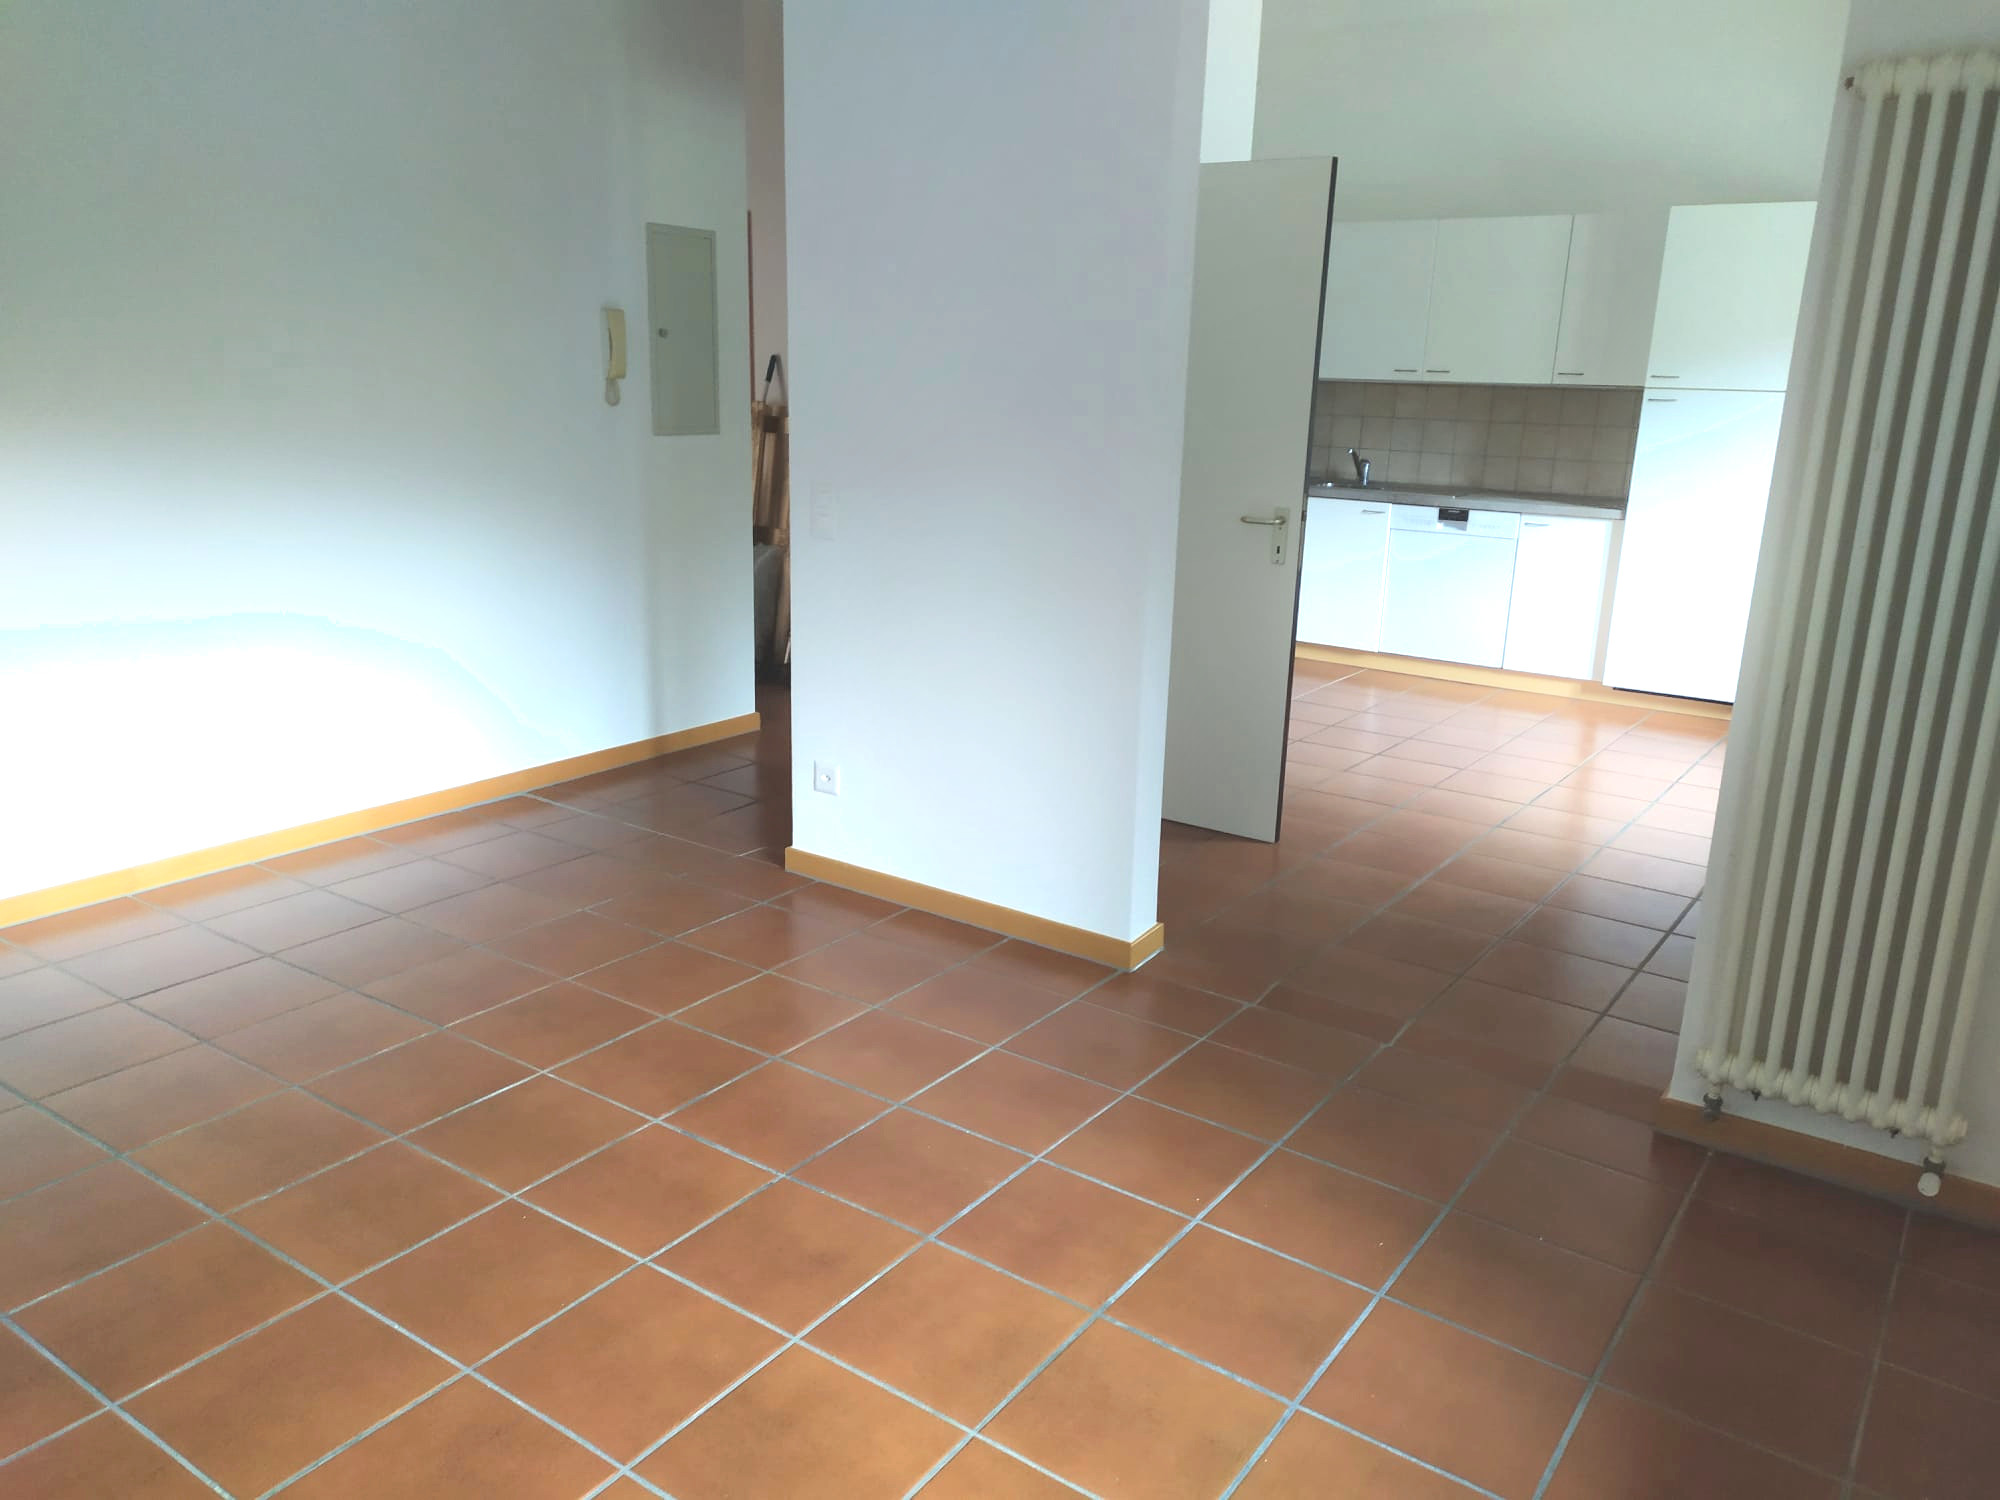 4 Via Caslaccio, Balerna, 6828, 1 Bedroom Bedrooms, ,1 BathroomBathrooms,Apartment,For Rent,Via Caslaccio,1084